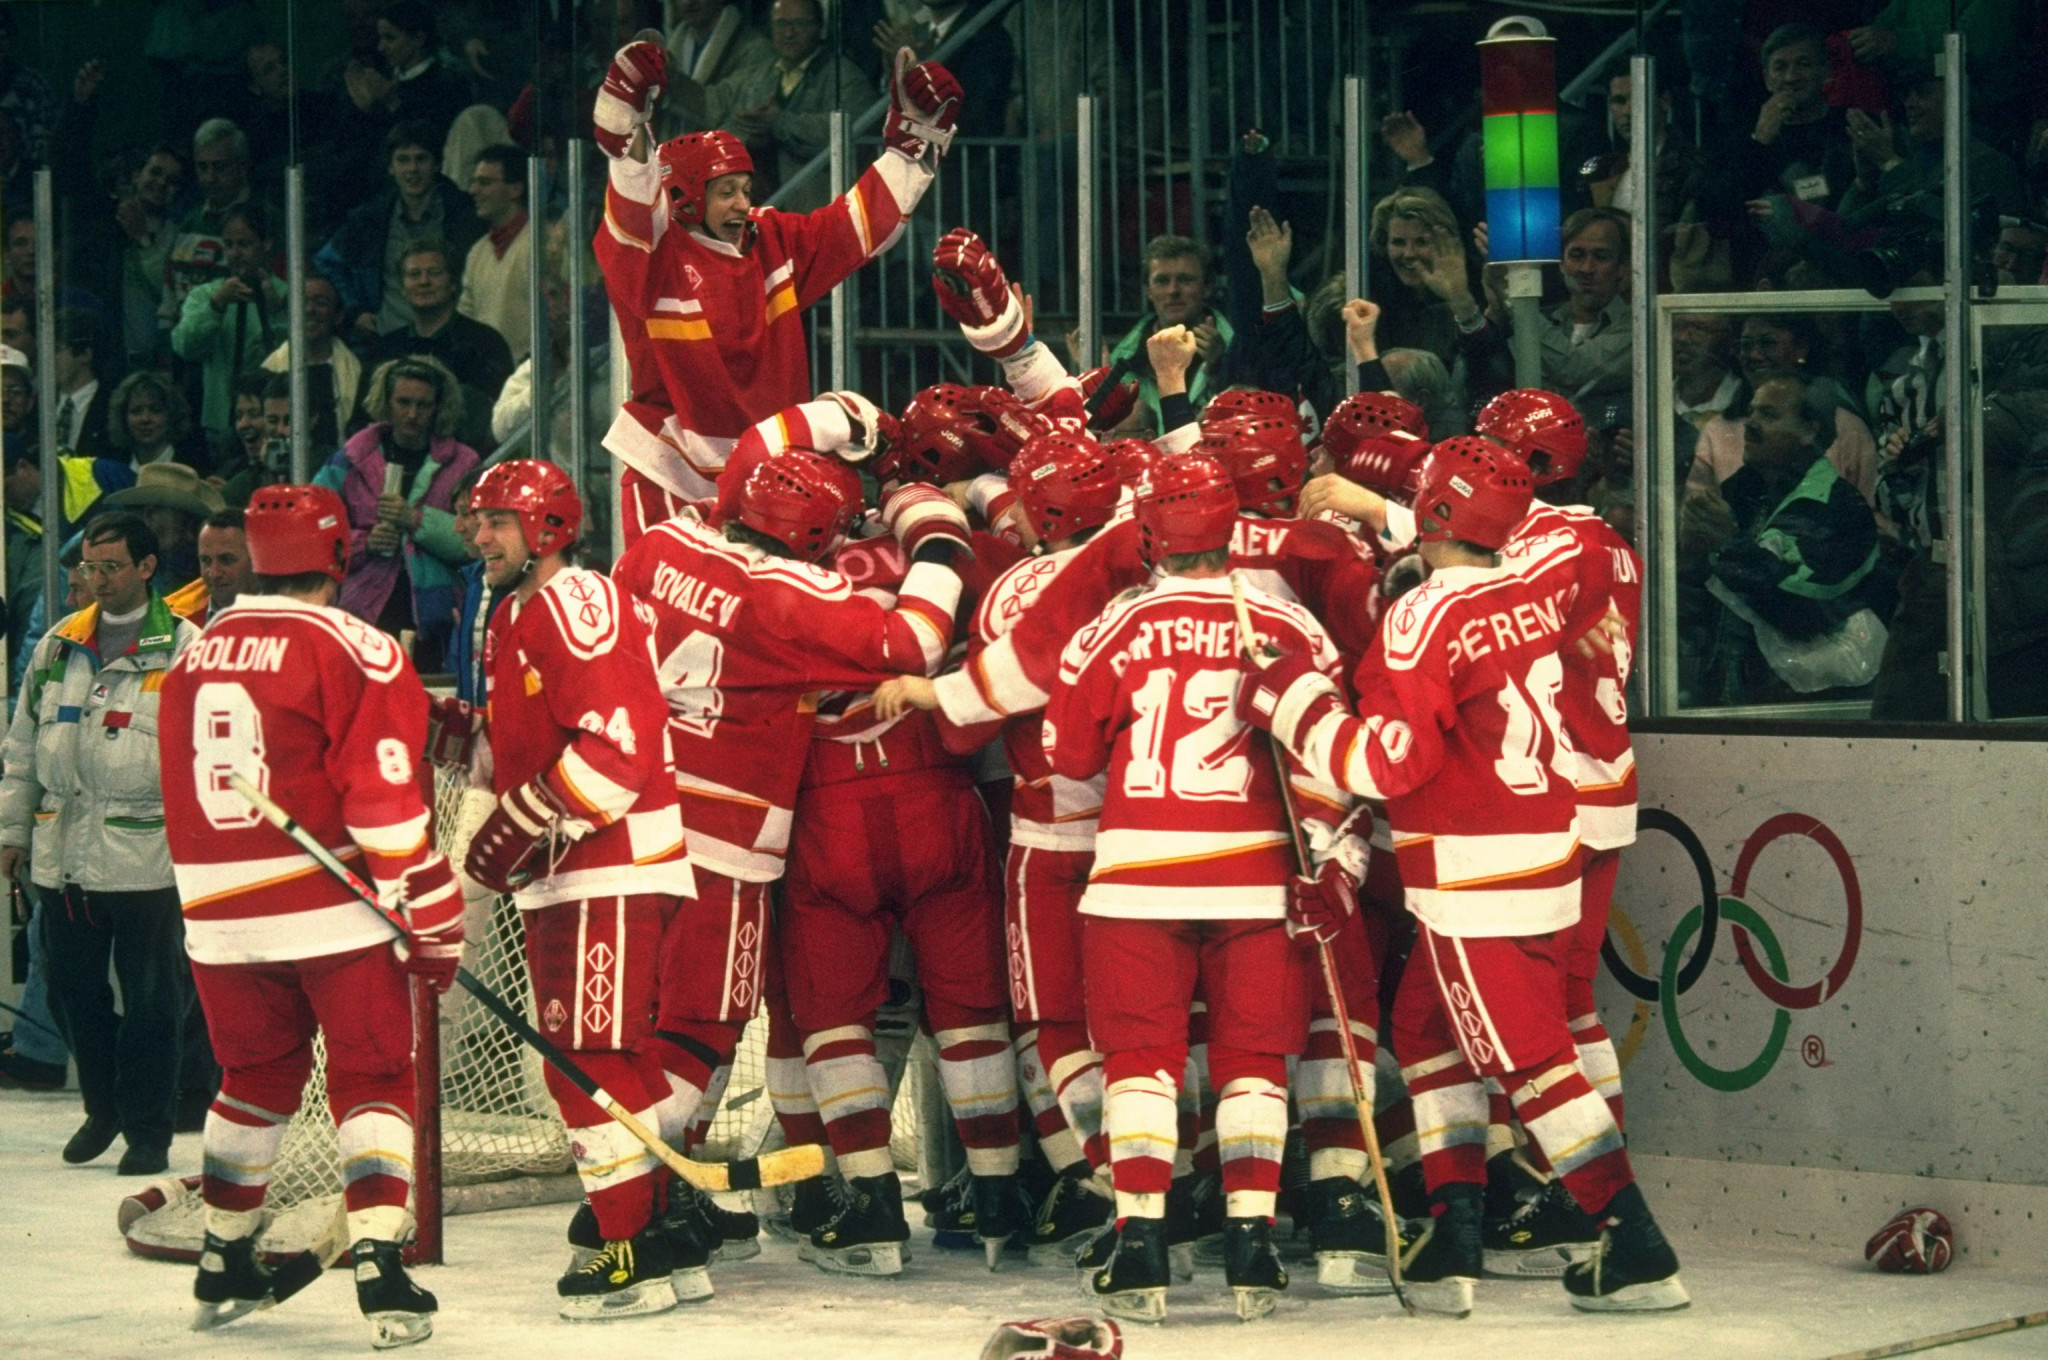 The Unified Team ice hockey side won Olympic gold at Albertville 1992 ©Getty Images